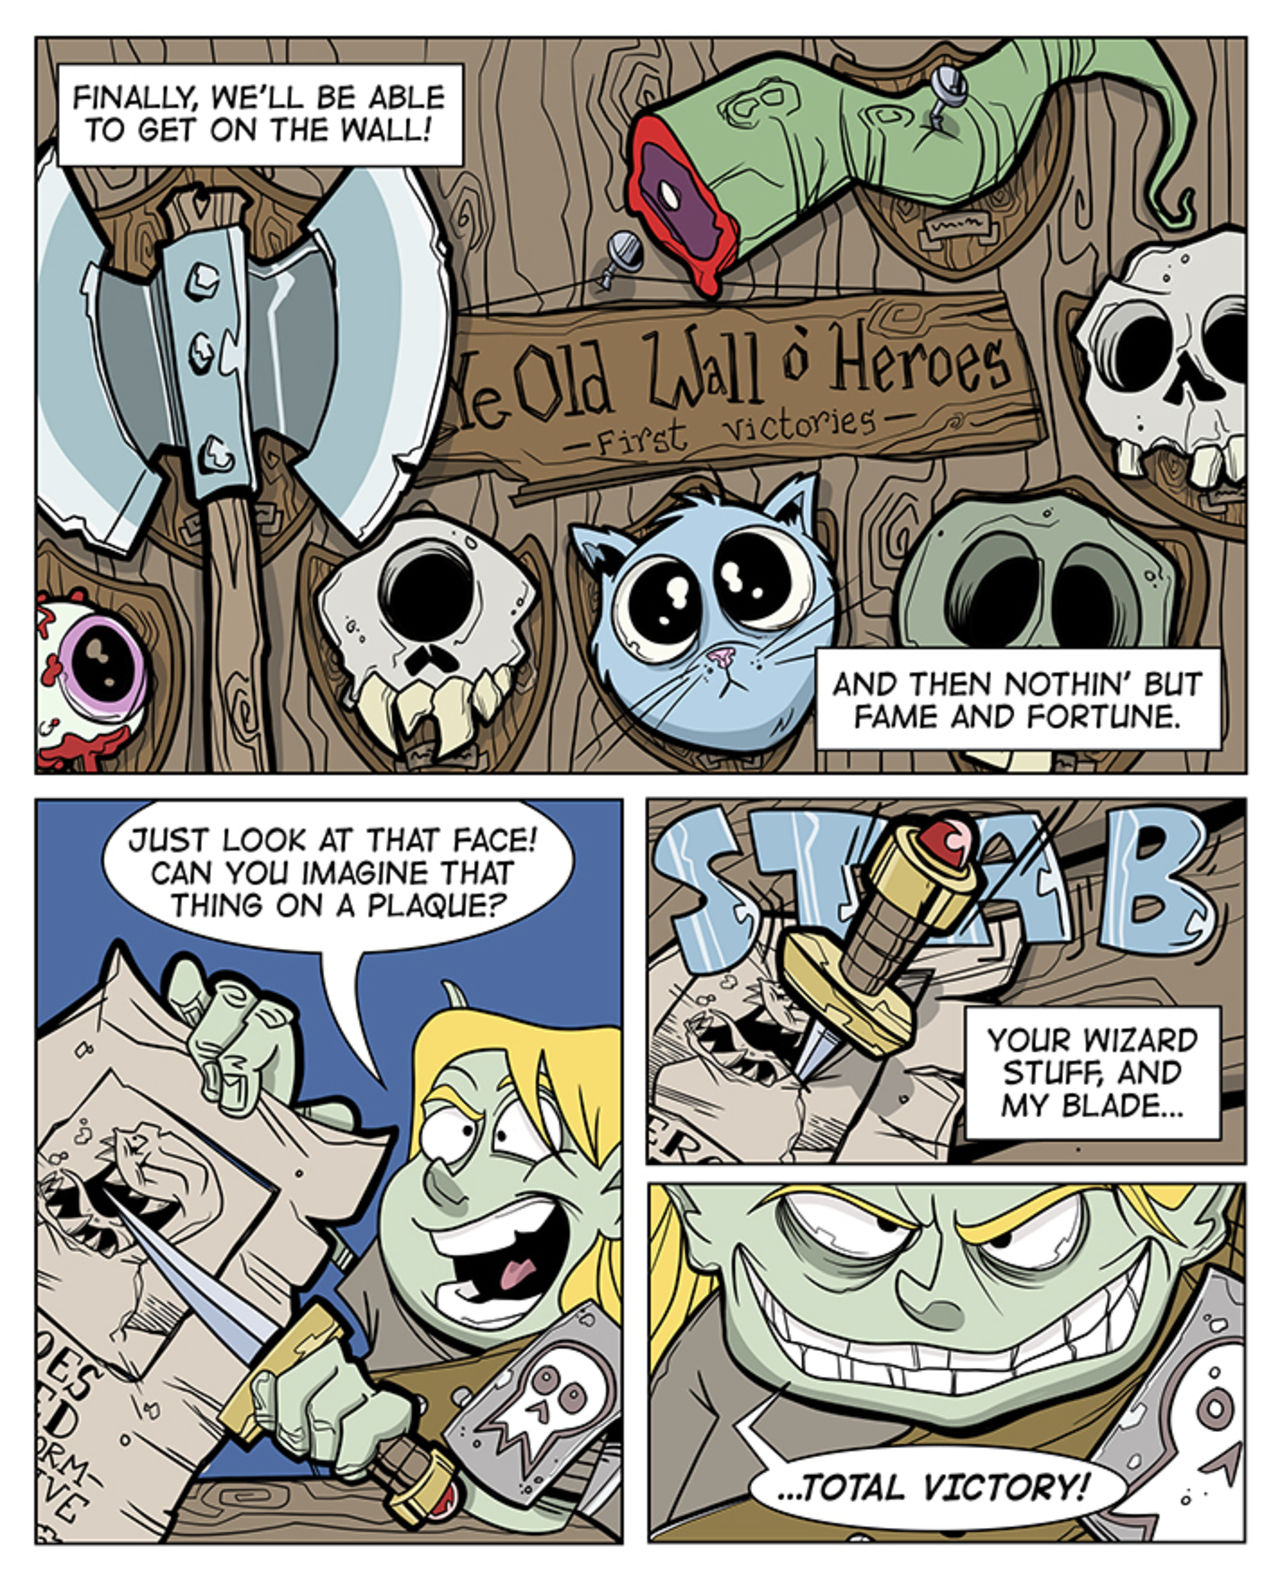 The comic continues by showing the old wall of heroes which consists of trophy heads and skulls from mythical beasts. beag says they'll finally get on that wall by hunting that worm.